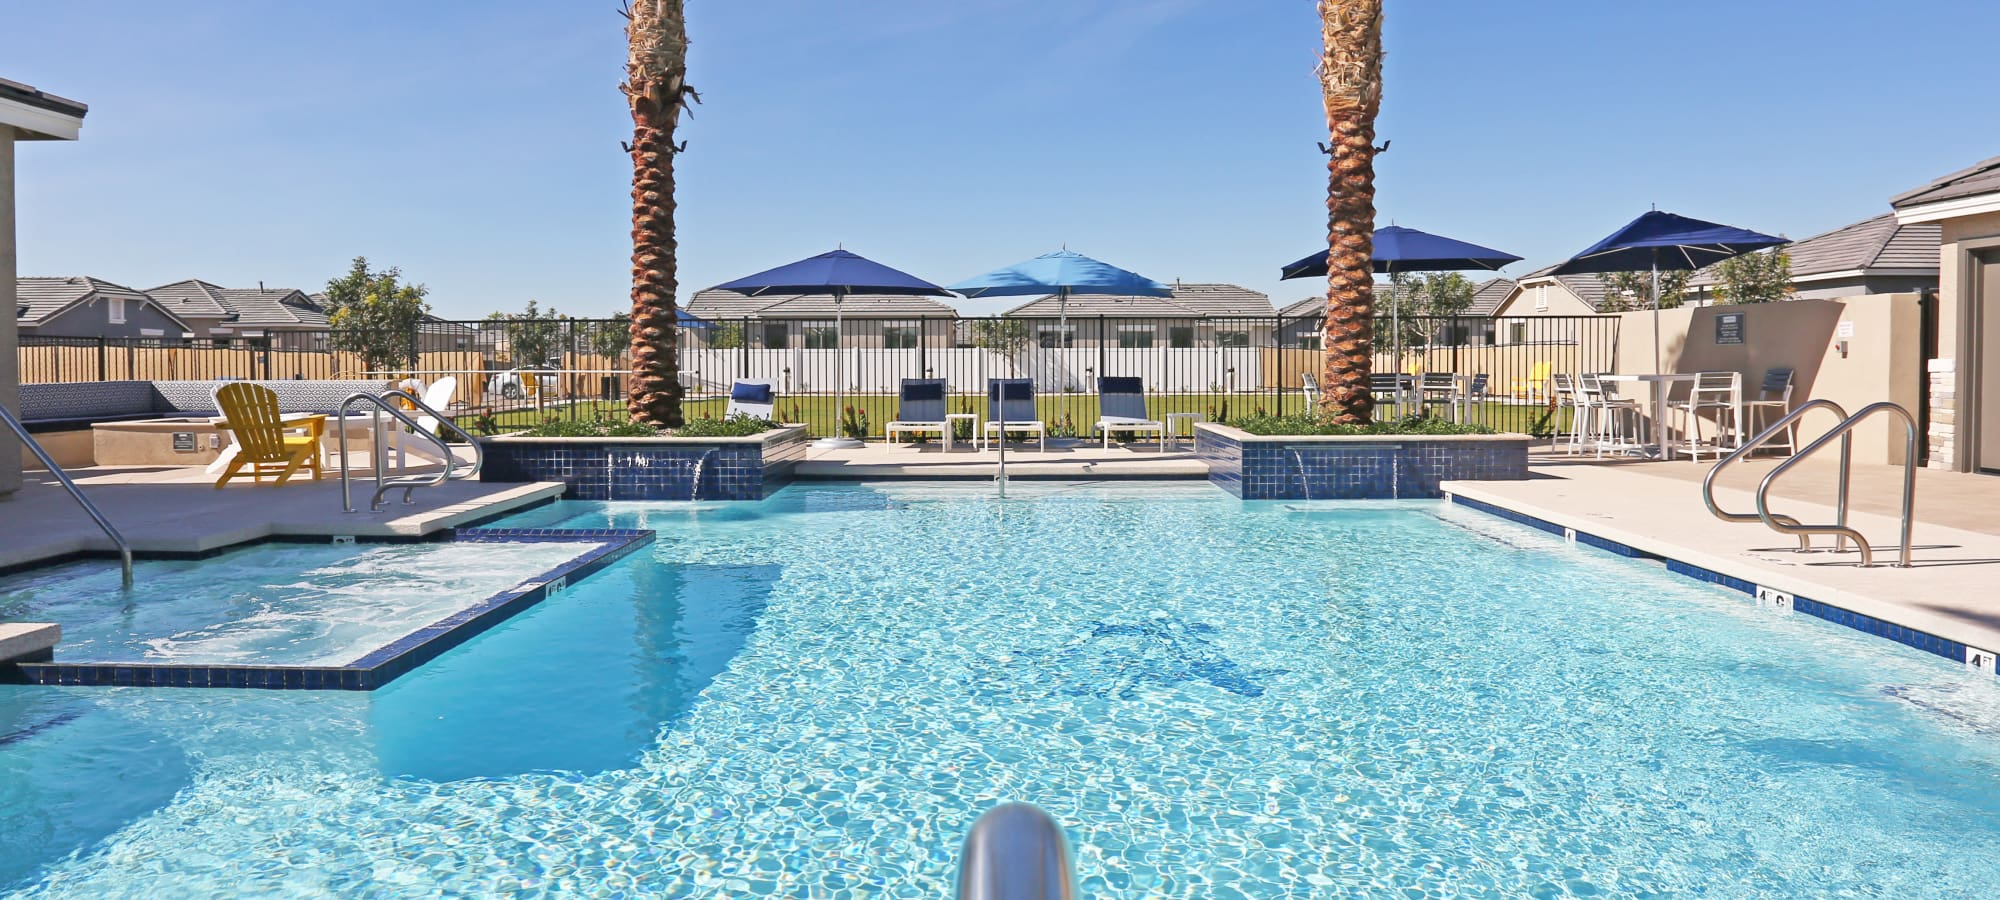 Swimming pool on another beautiful day at Christopher Todd Communities On Camelback in Litchfield Park, Arizona